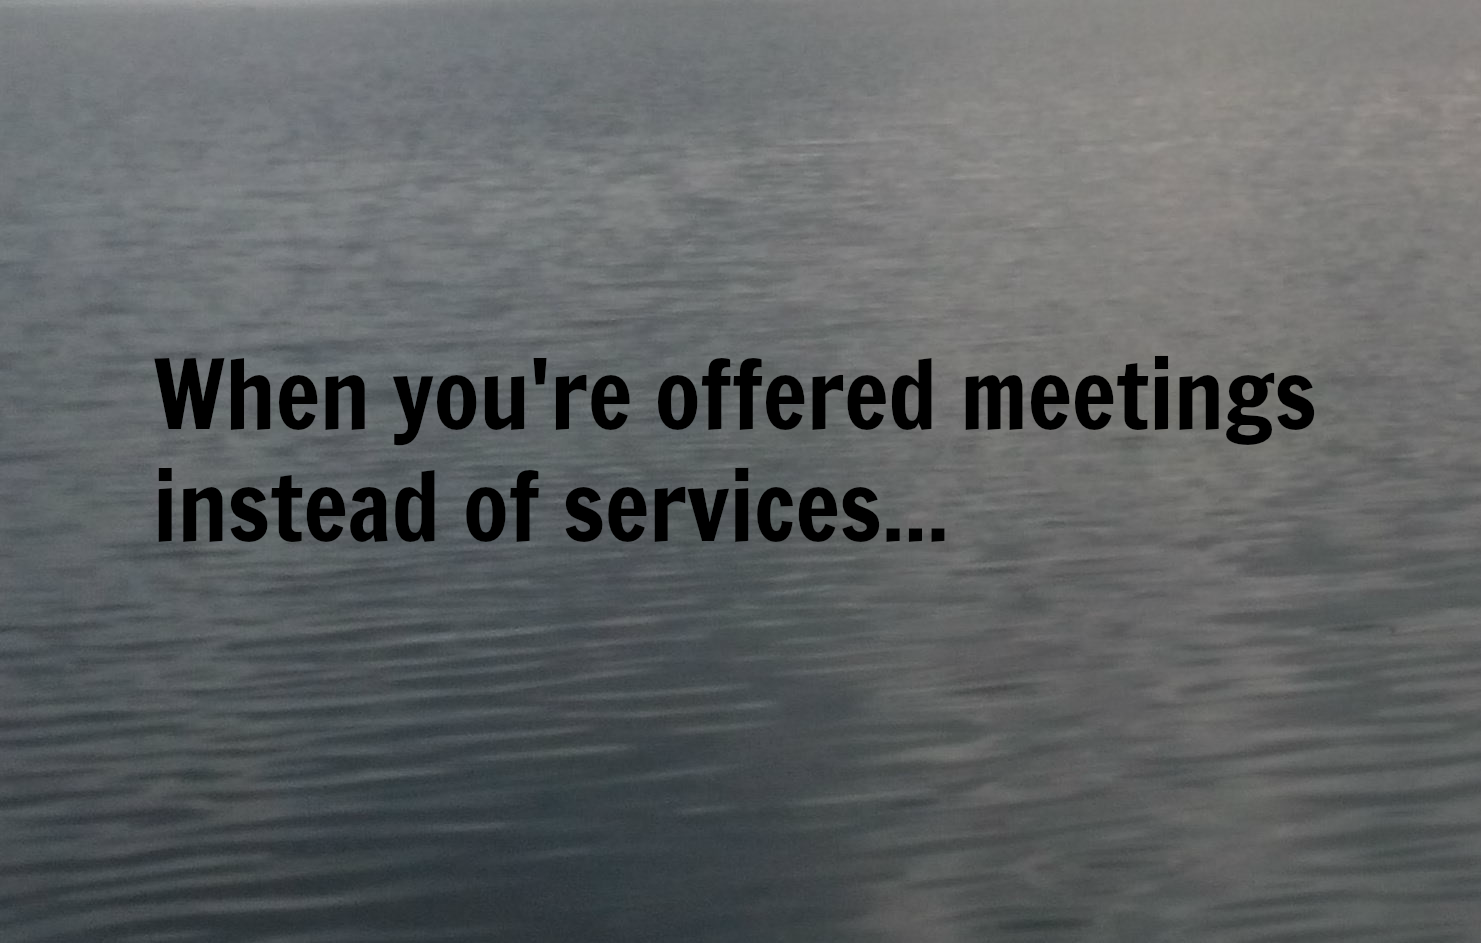 When you're offered meetings instead of services